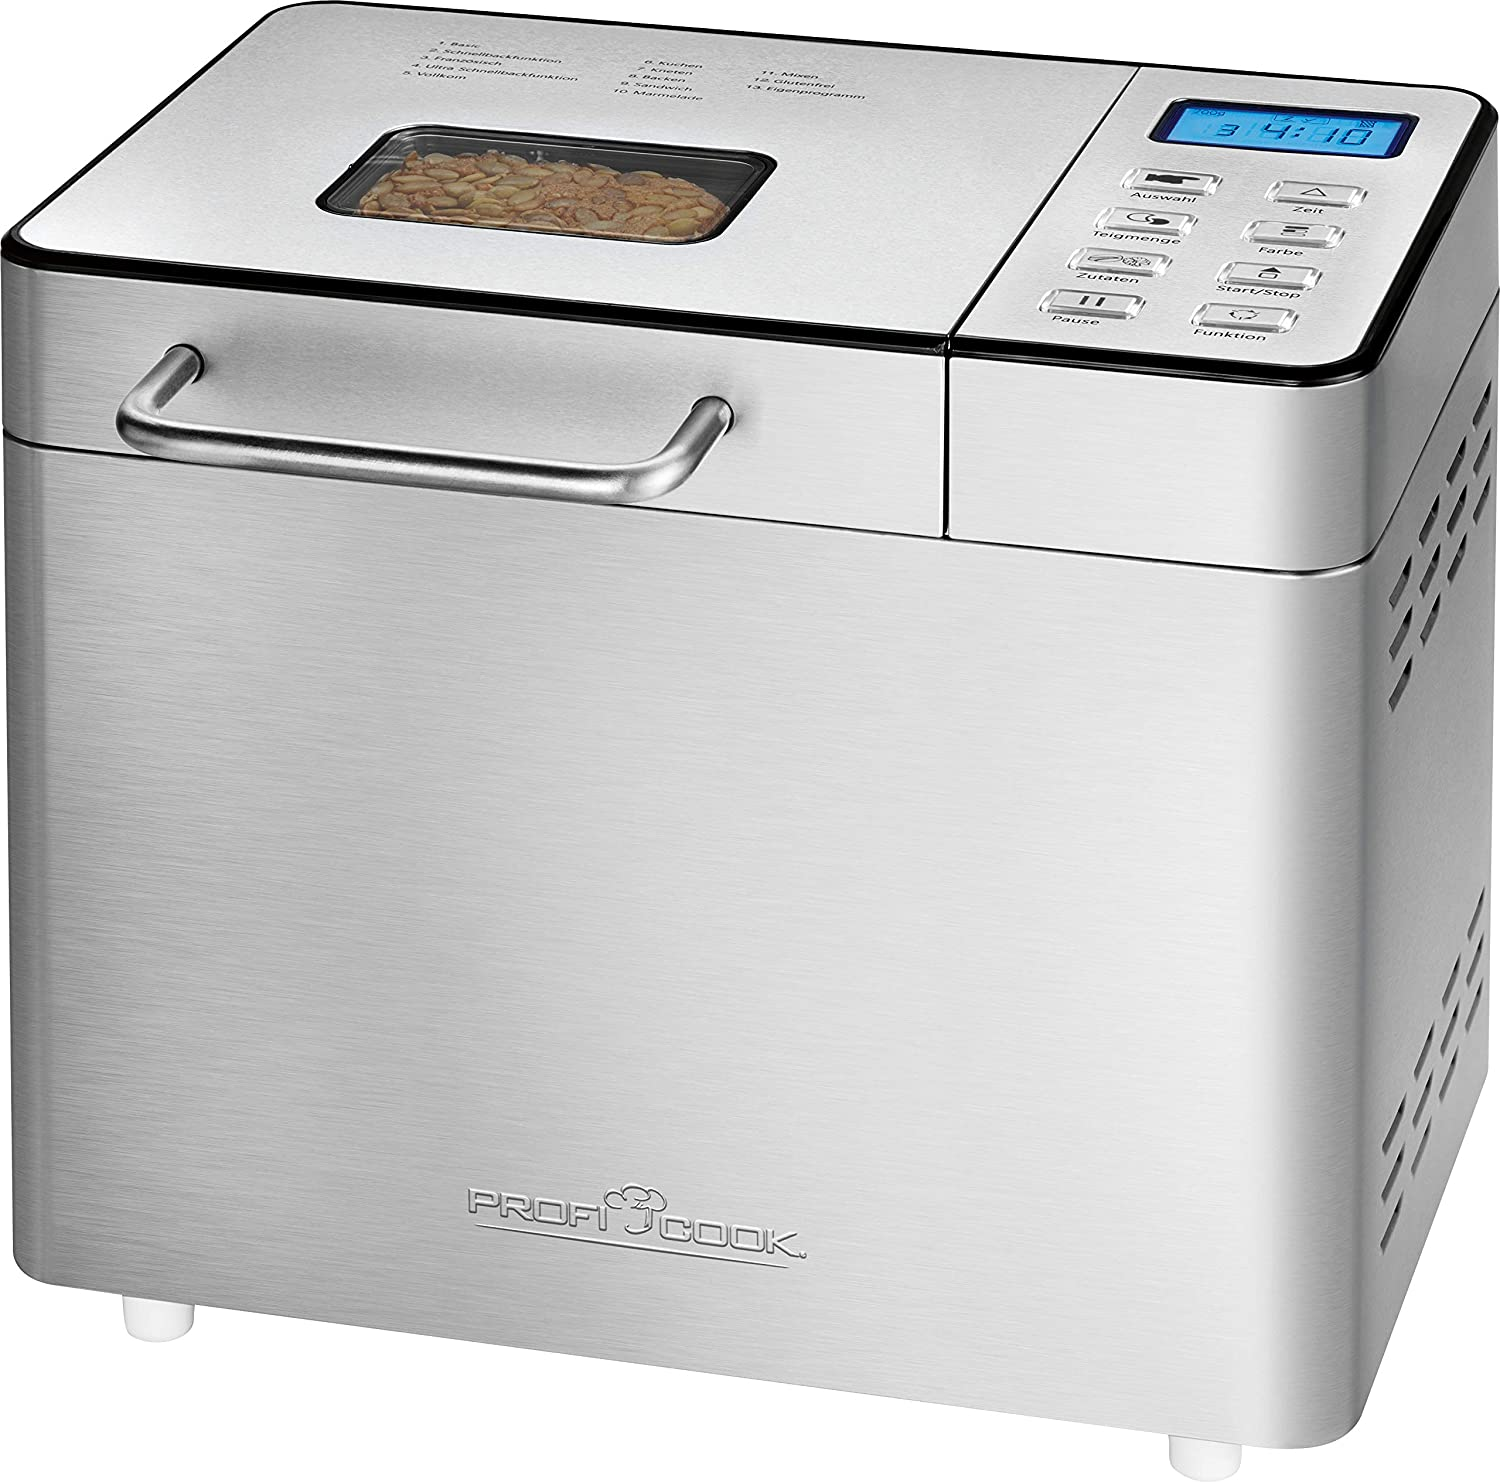 Profi Cook Brotbackautomat PC-BBA 1077 acero fino: Amazon.es: Hogar